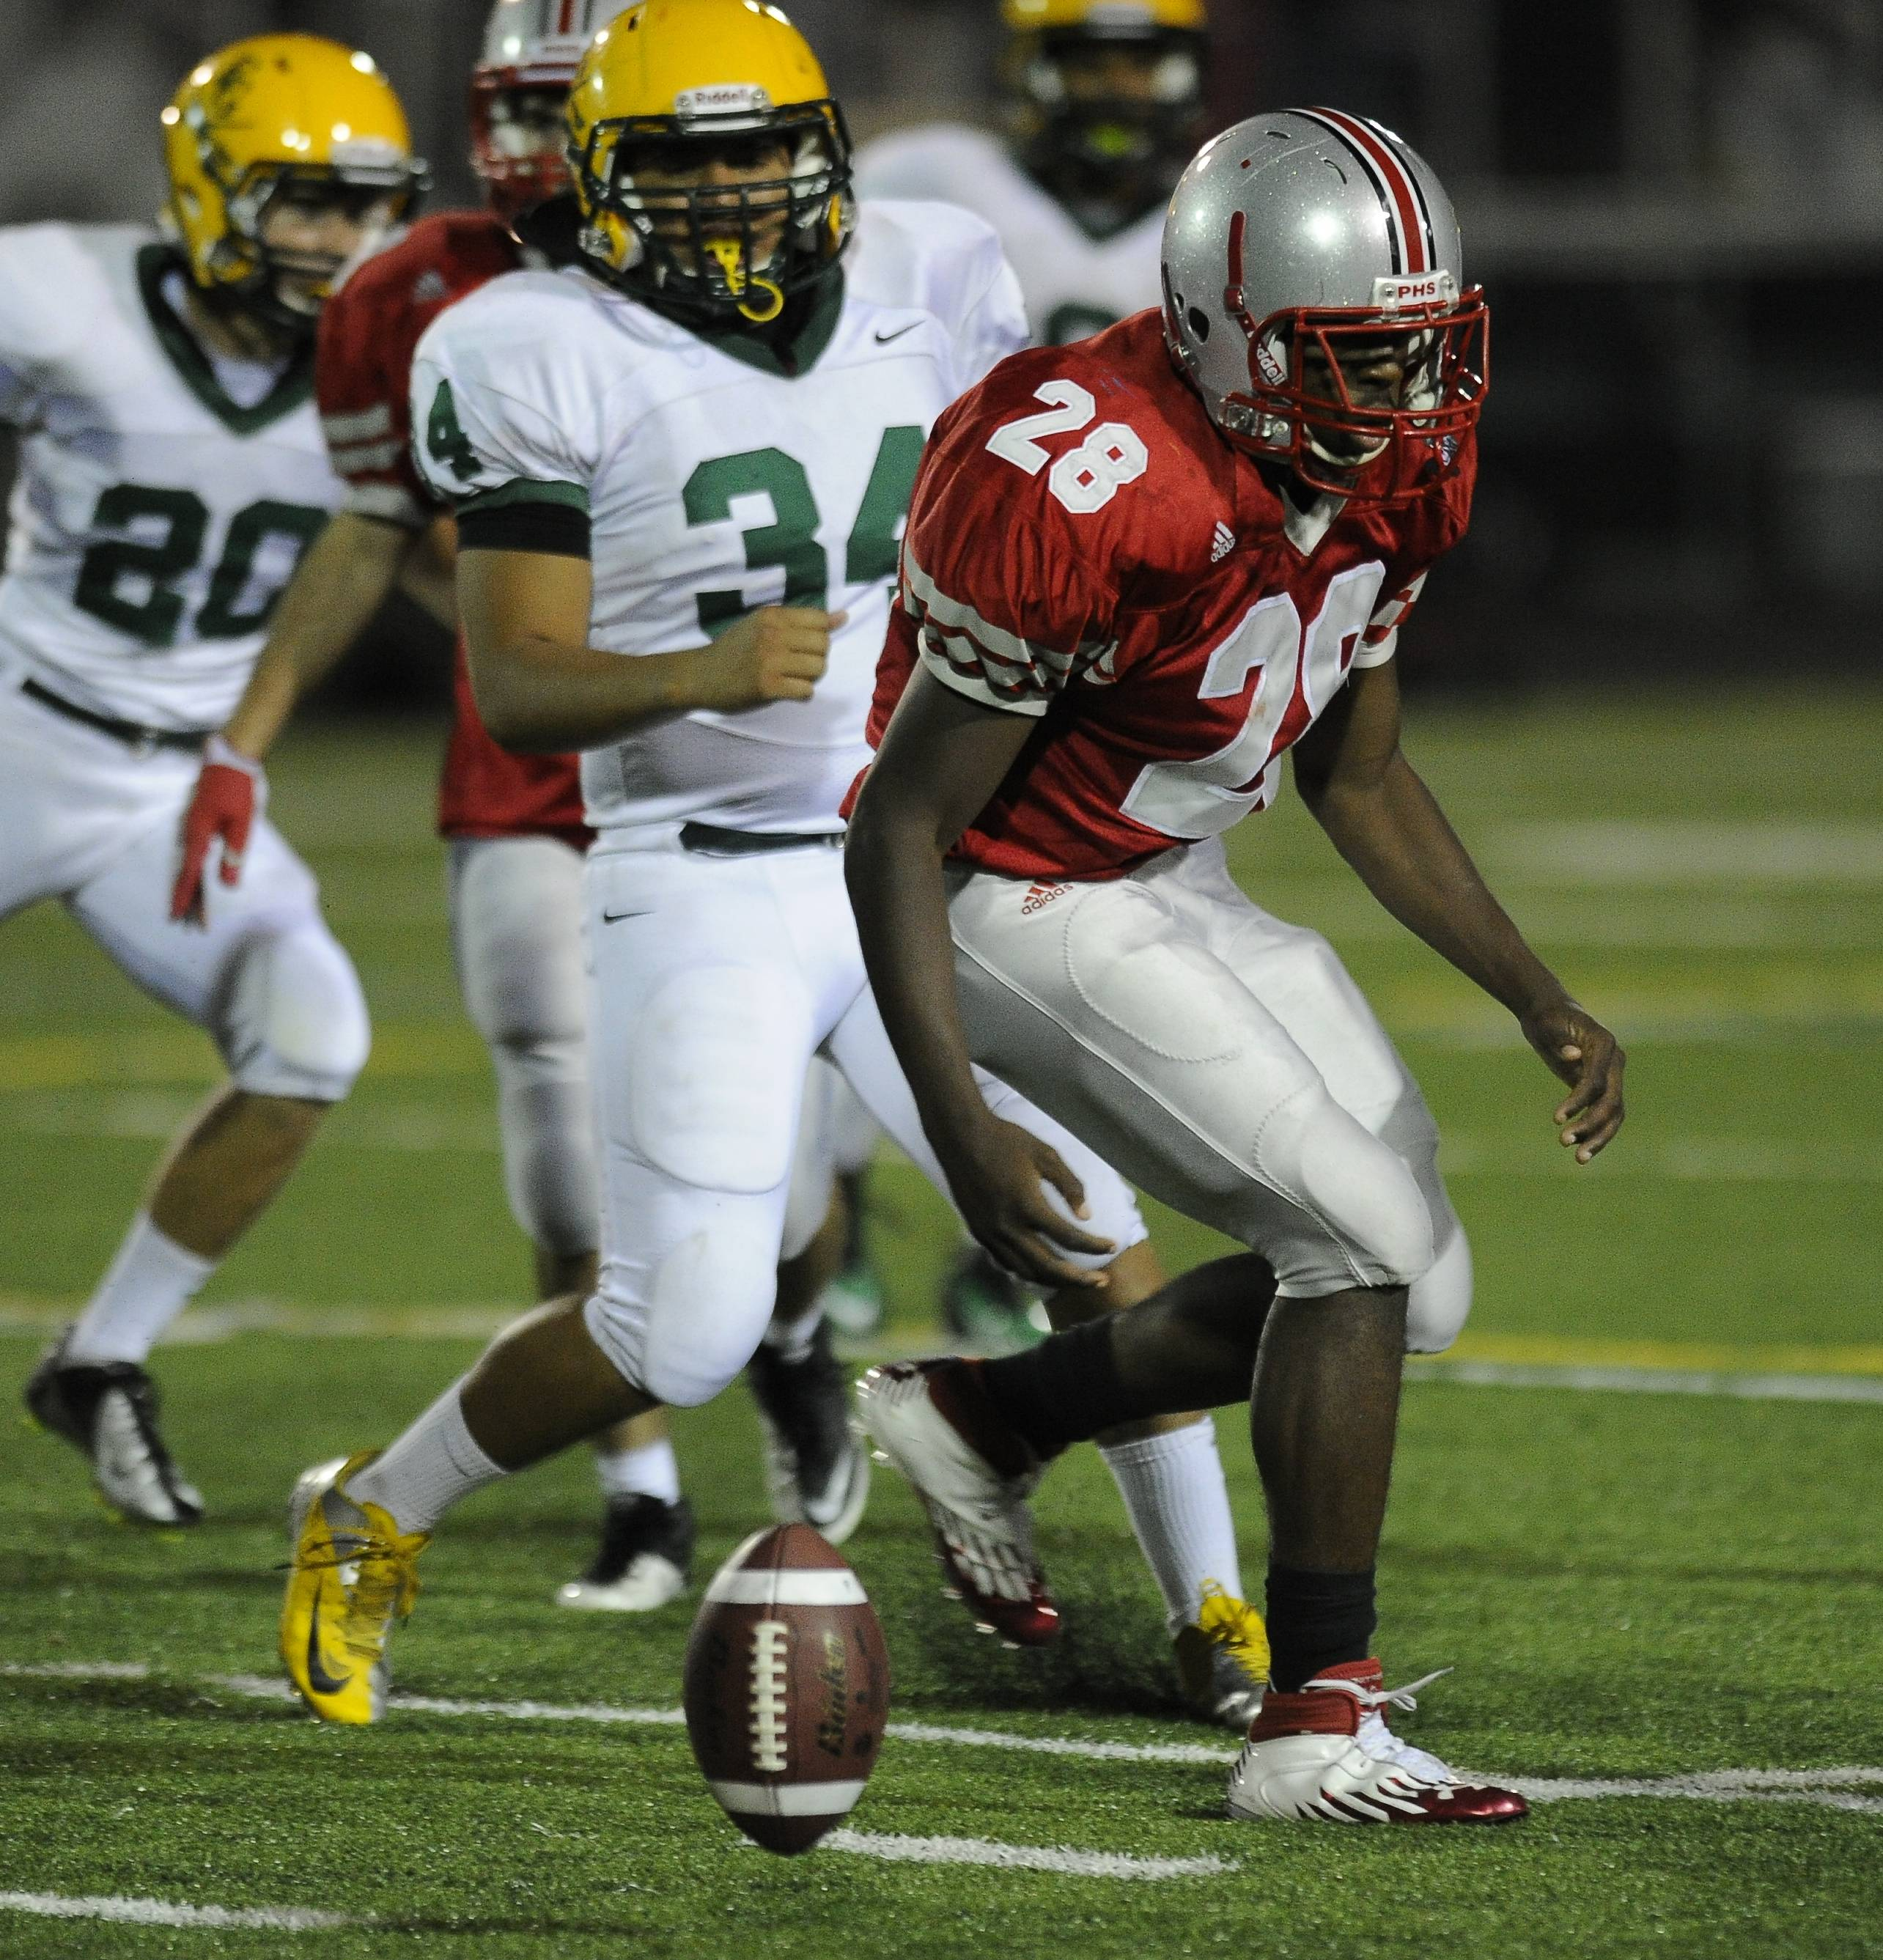 Week 3 matchup: Palatine vs. Elk Grove Village